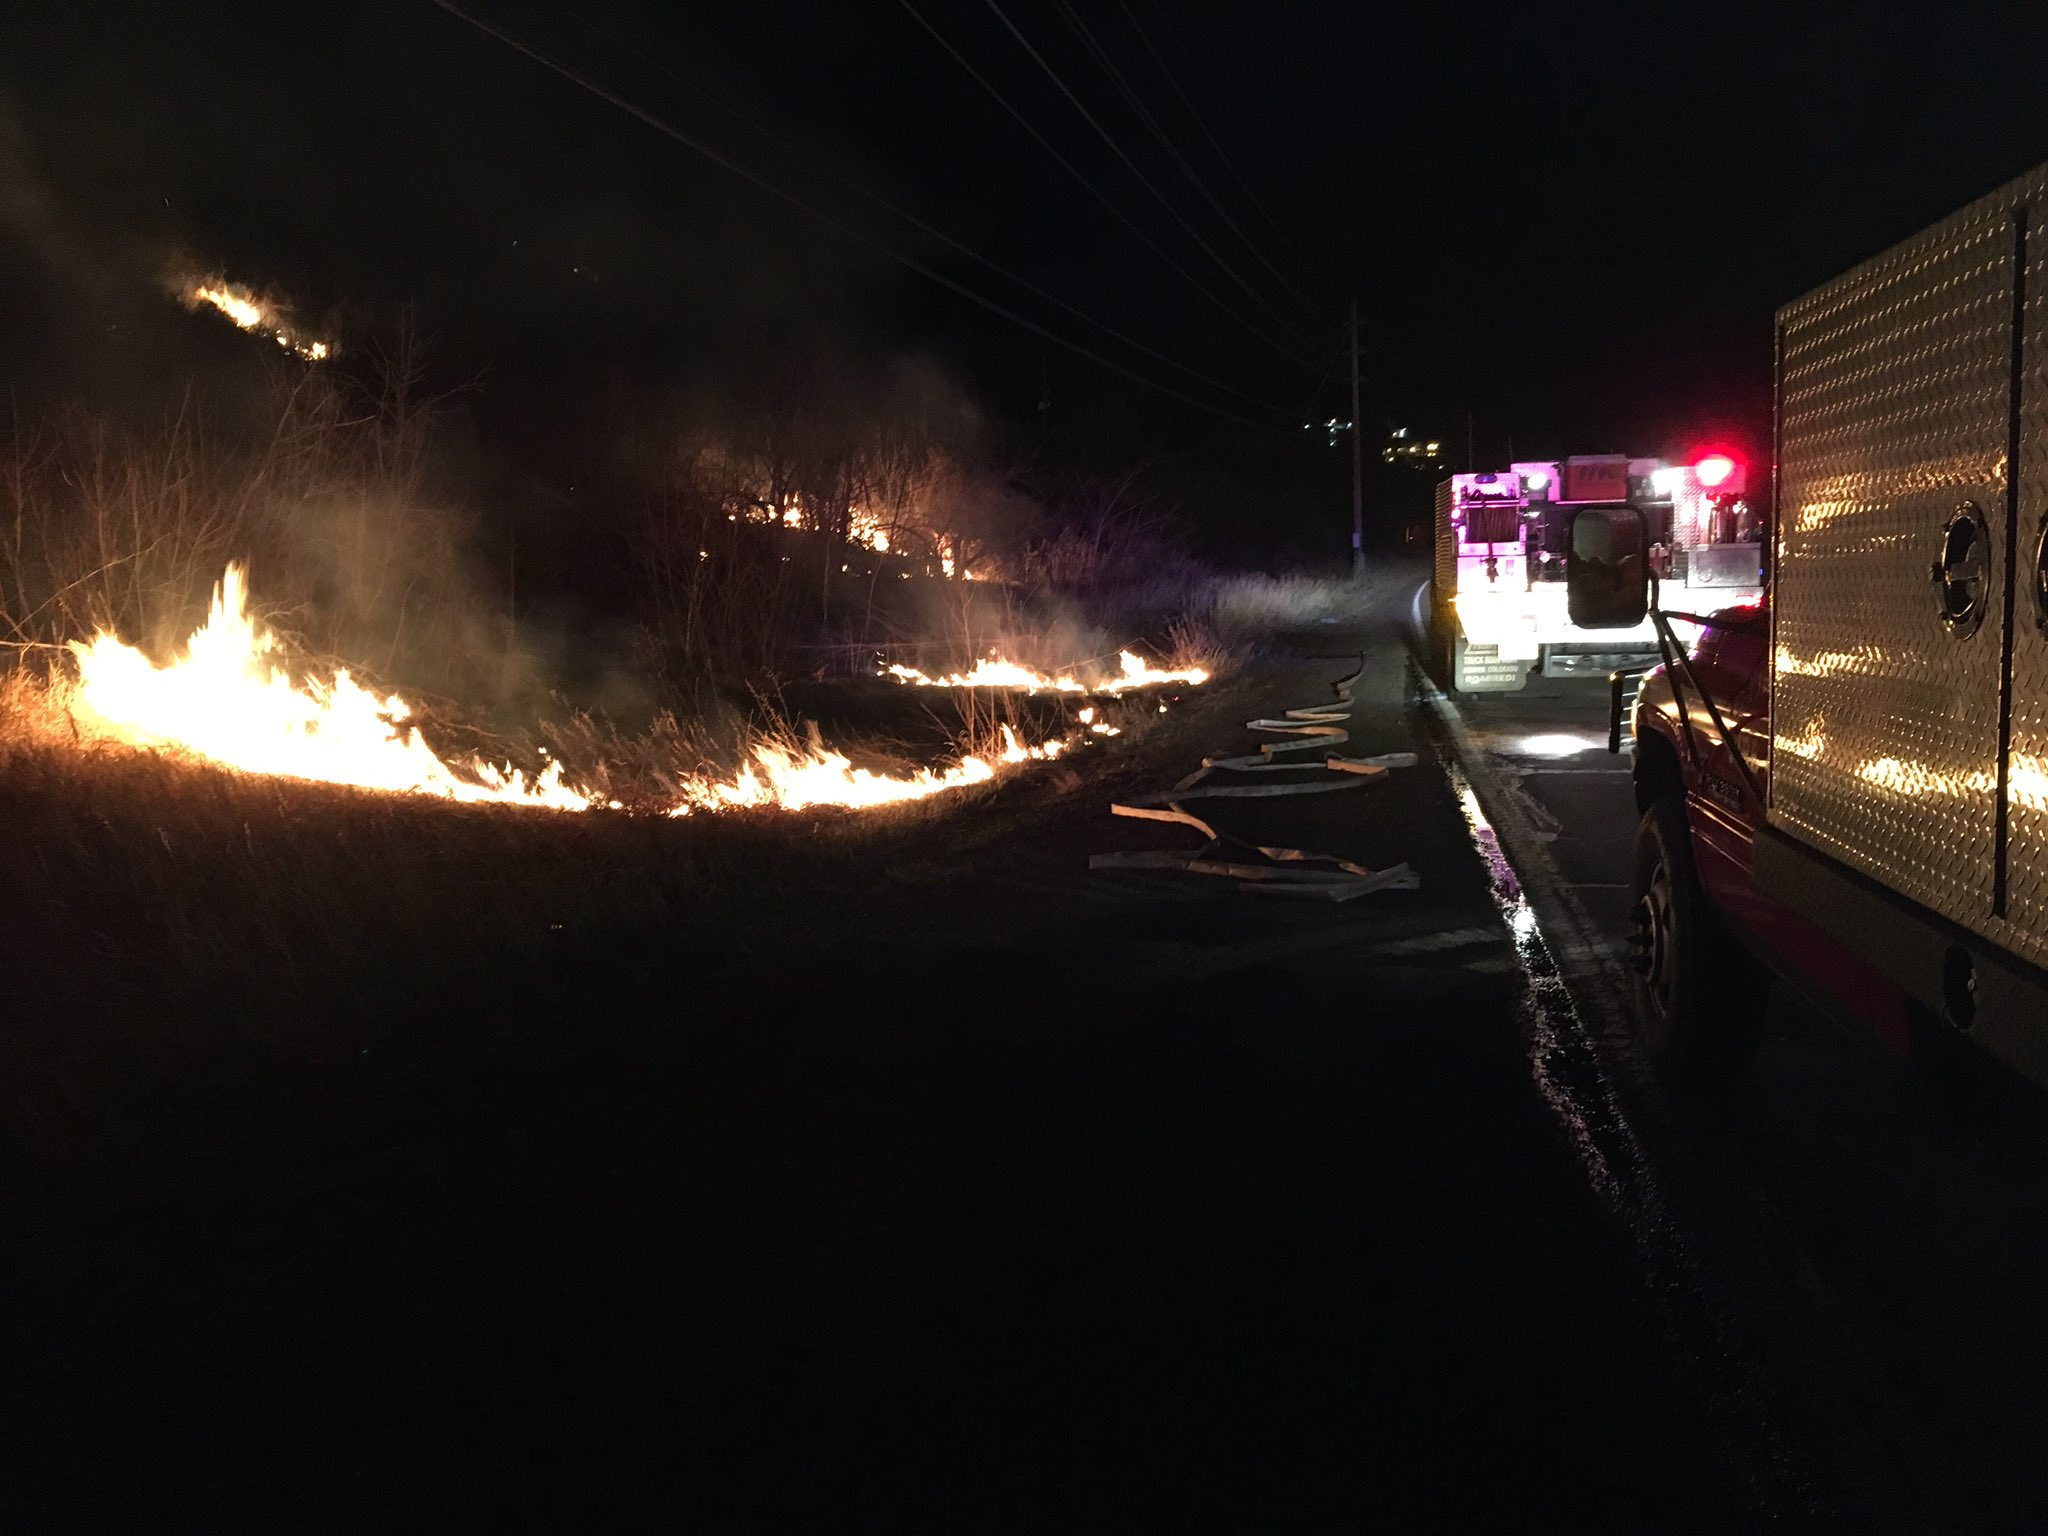 A fire burns near South Table Mountain in Golden. (Courtesy West Metro Fire Rescue.)